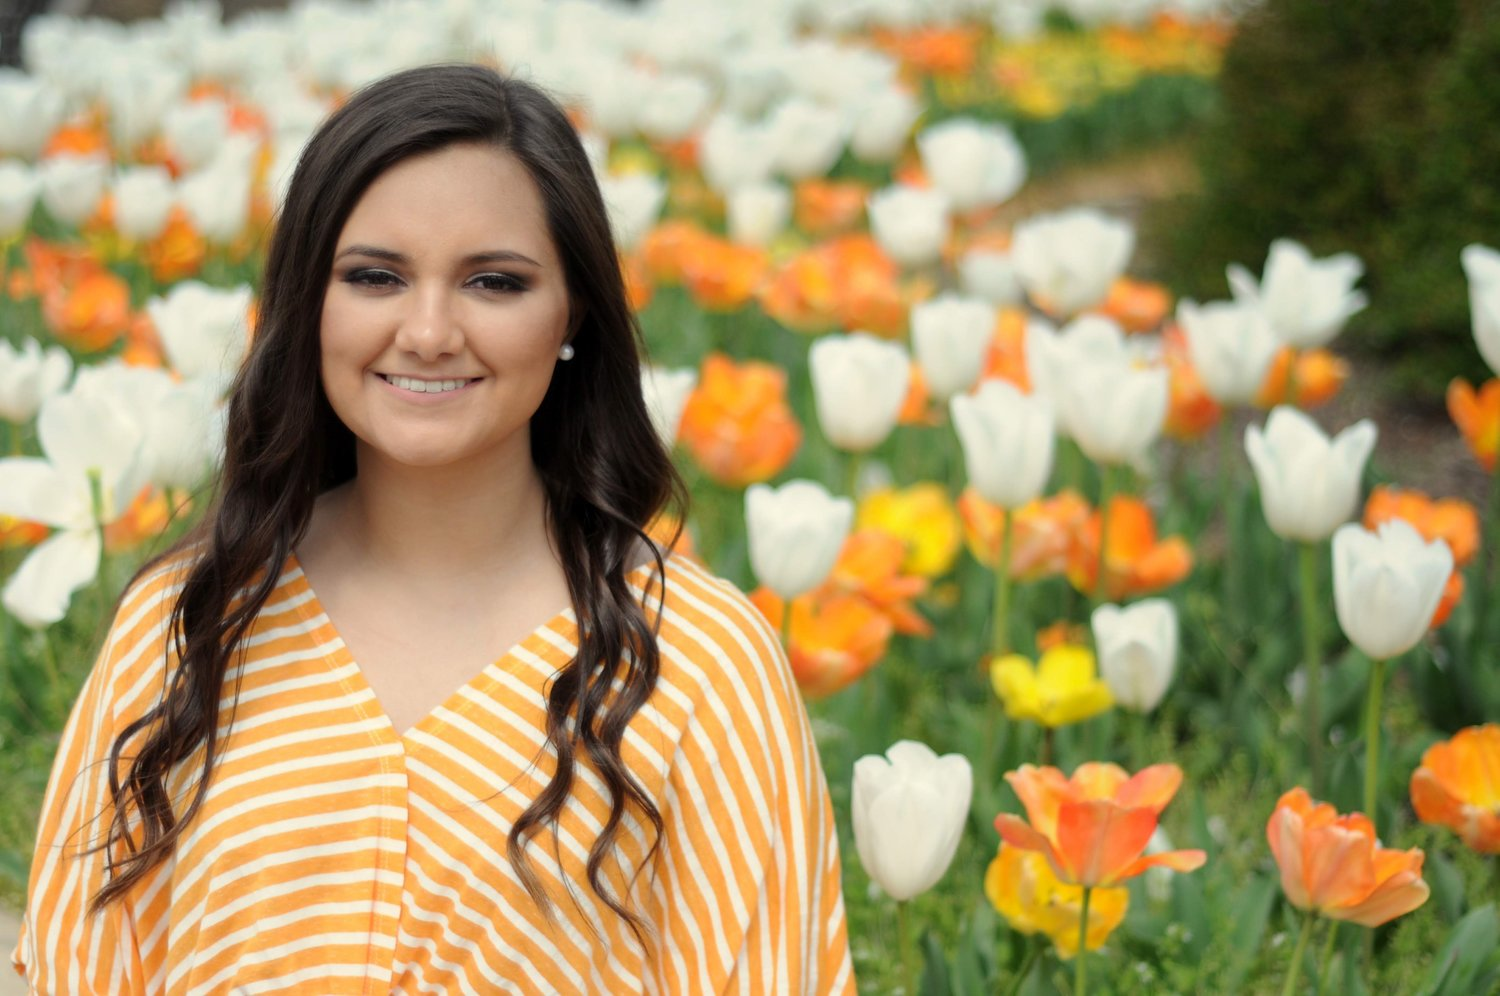 Adella Lonas was recently named a Farm Credit Scholar at UT.